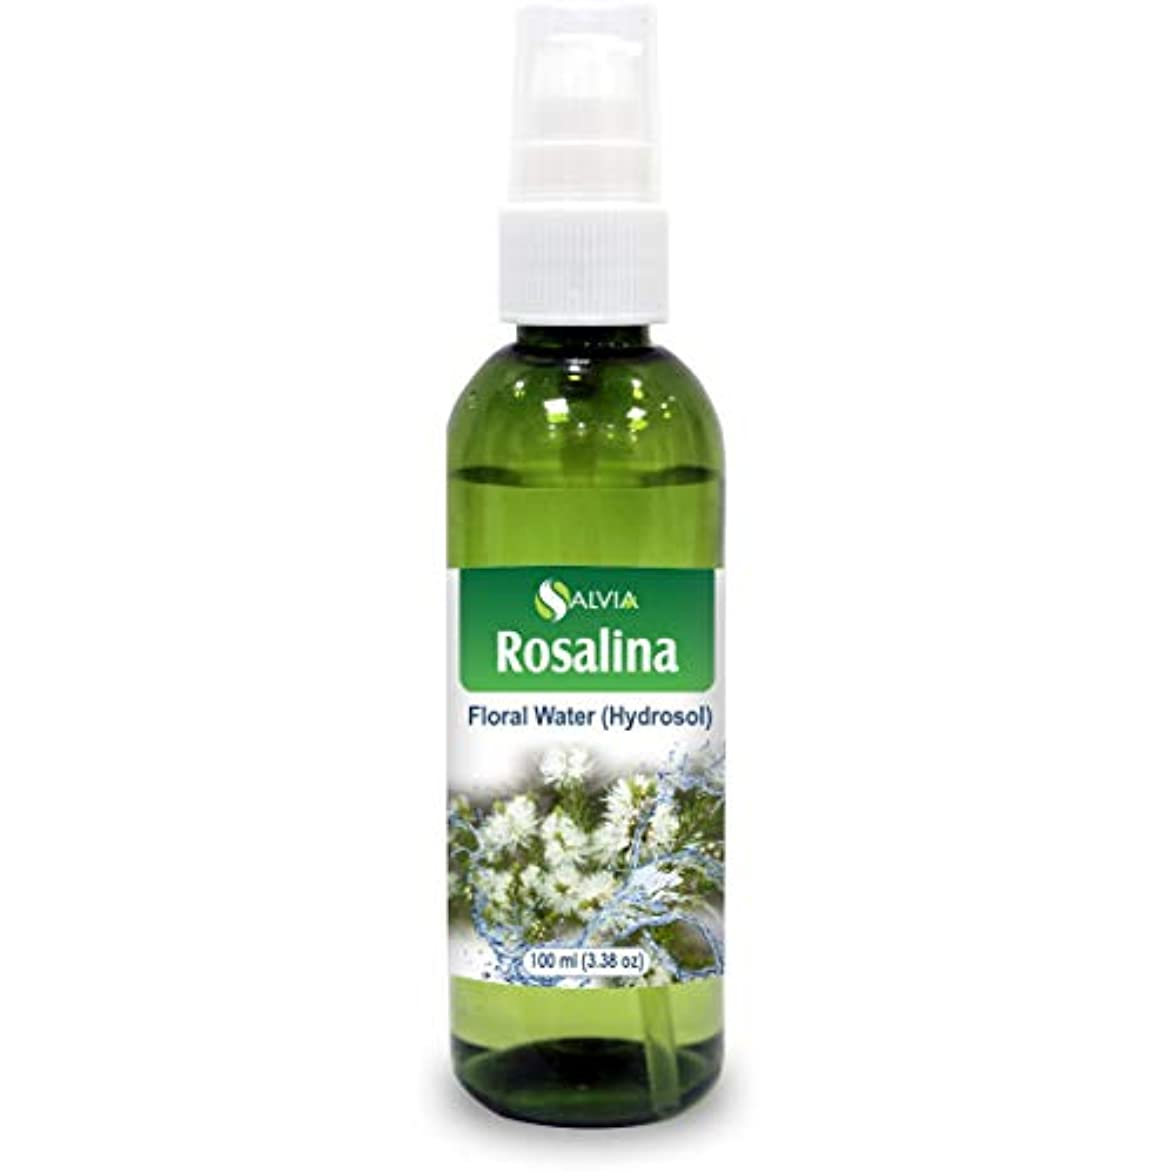 ファーザーファージュ軍永続Rosalina Oil Floral Water 100ml (Hydrosol) 100% Pure And Natural